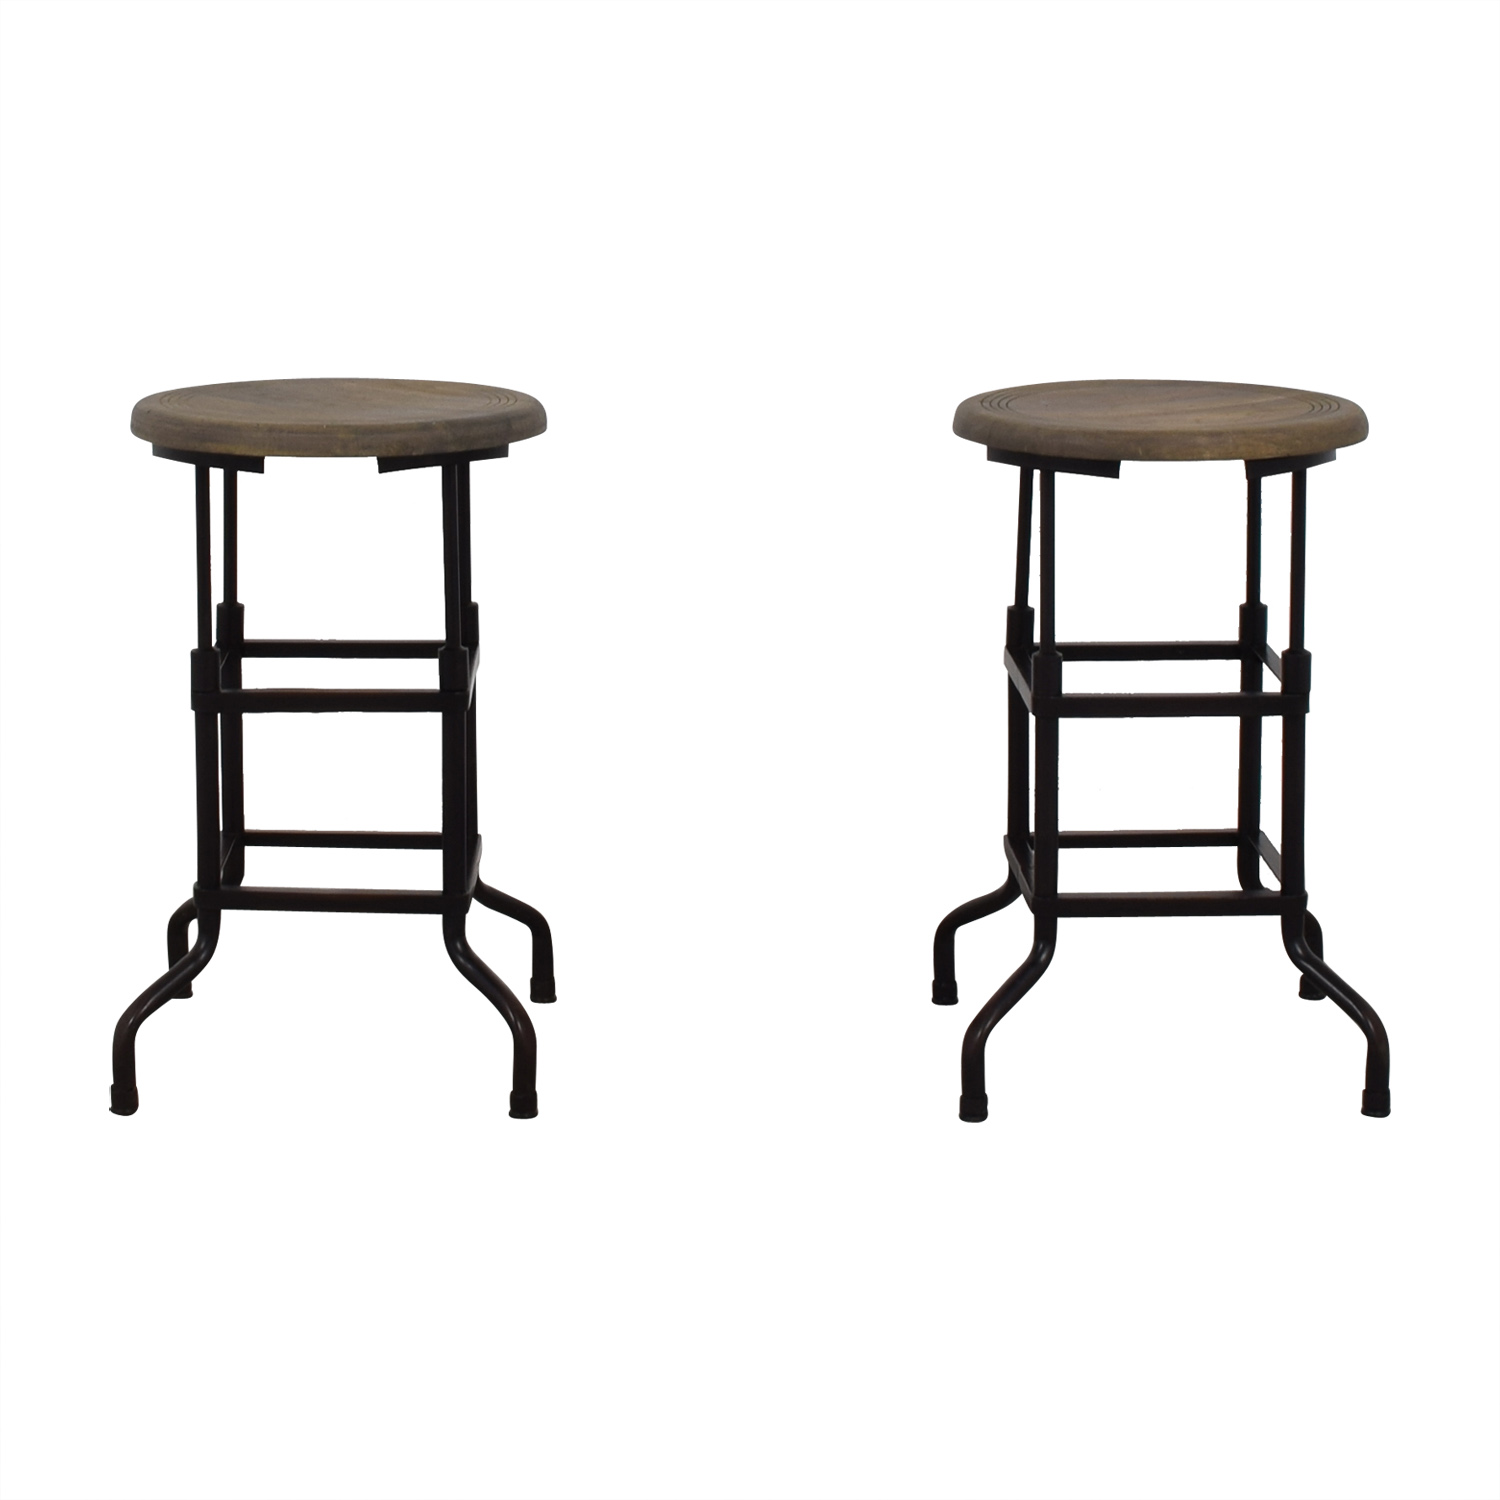 Cool 69 Off Restoration Hardware Restoration Hardware 1920S American Factory Stools Chairs Gamerscity Chair Design For Home Gamerscityorg